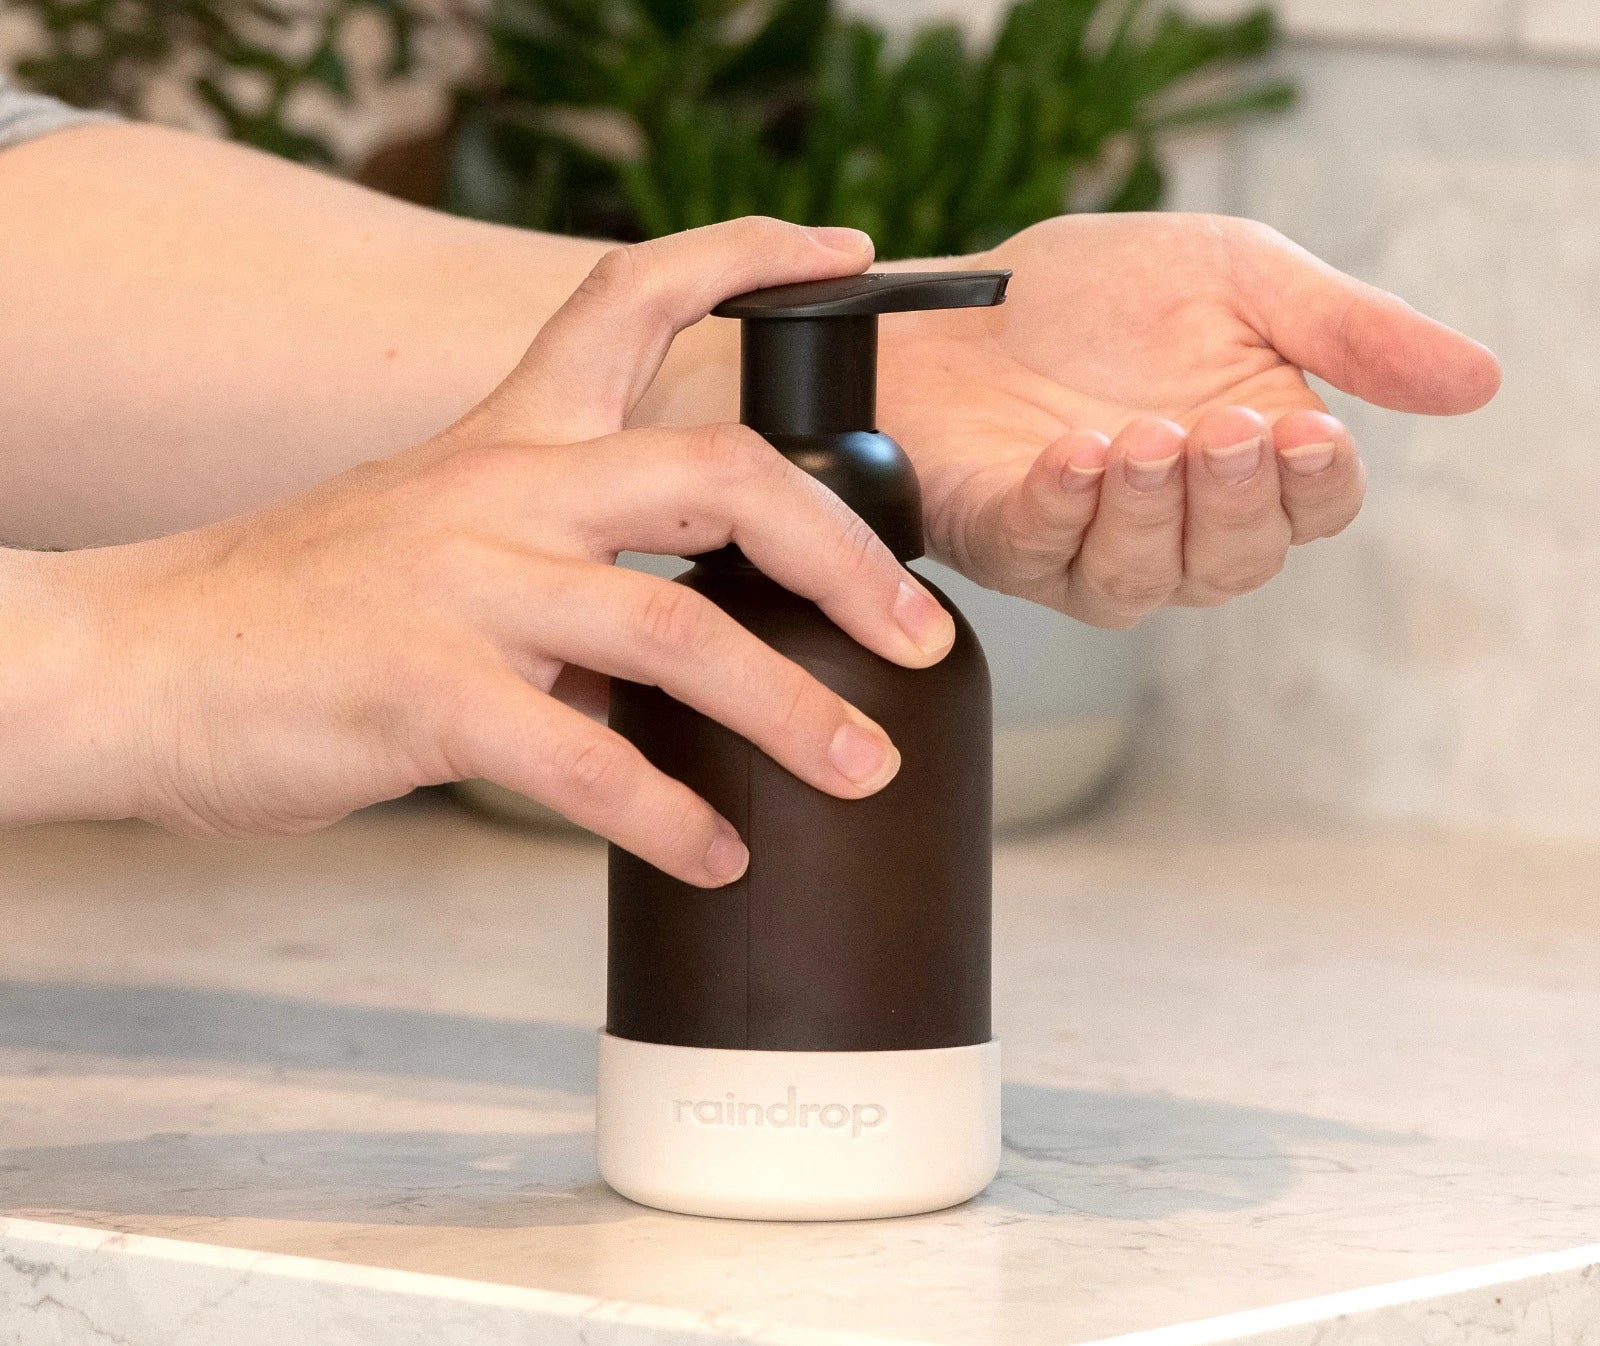 Cleaning your hands with the plastic free soap refill